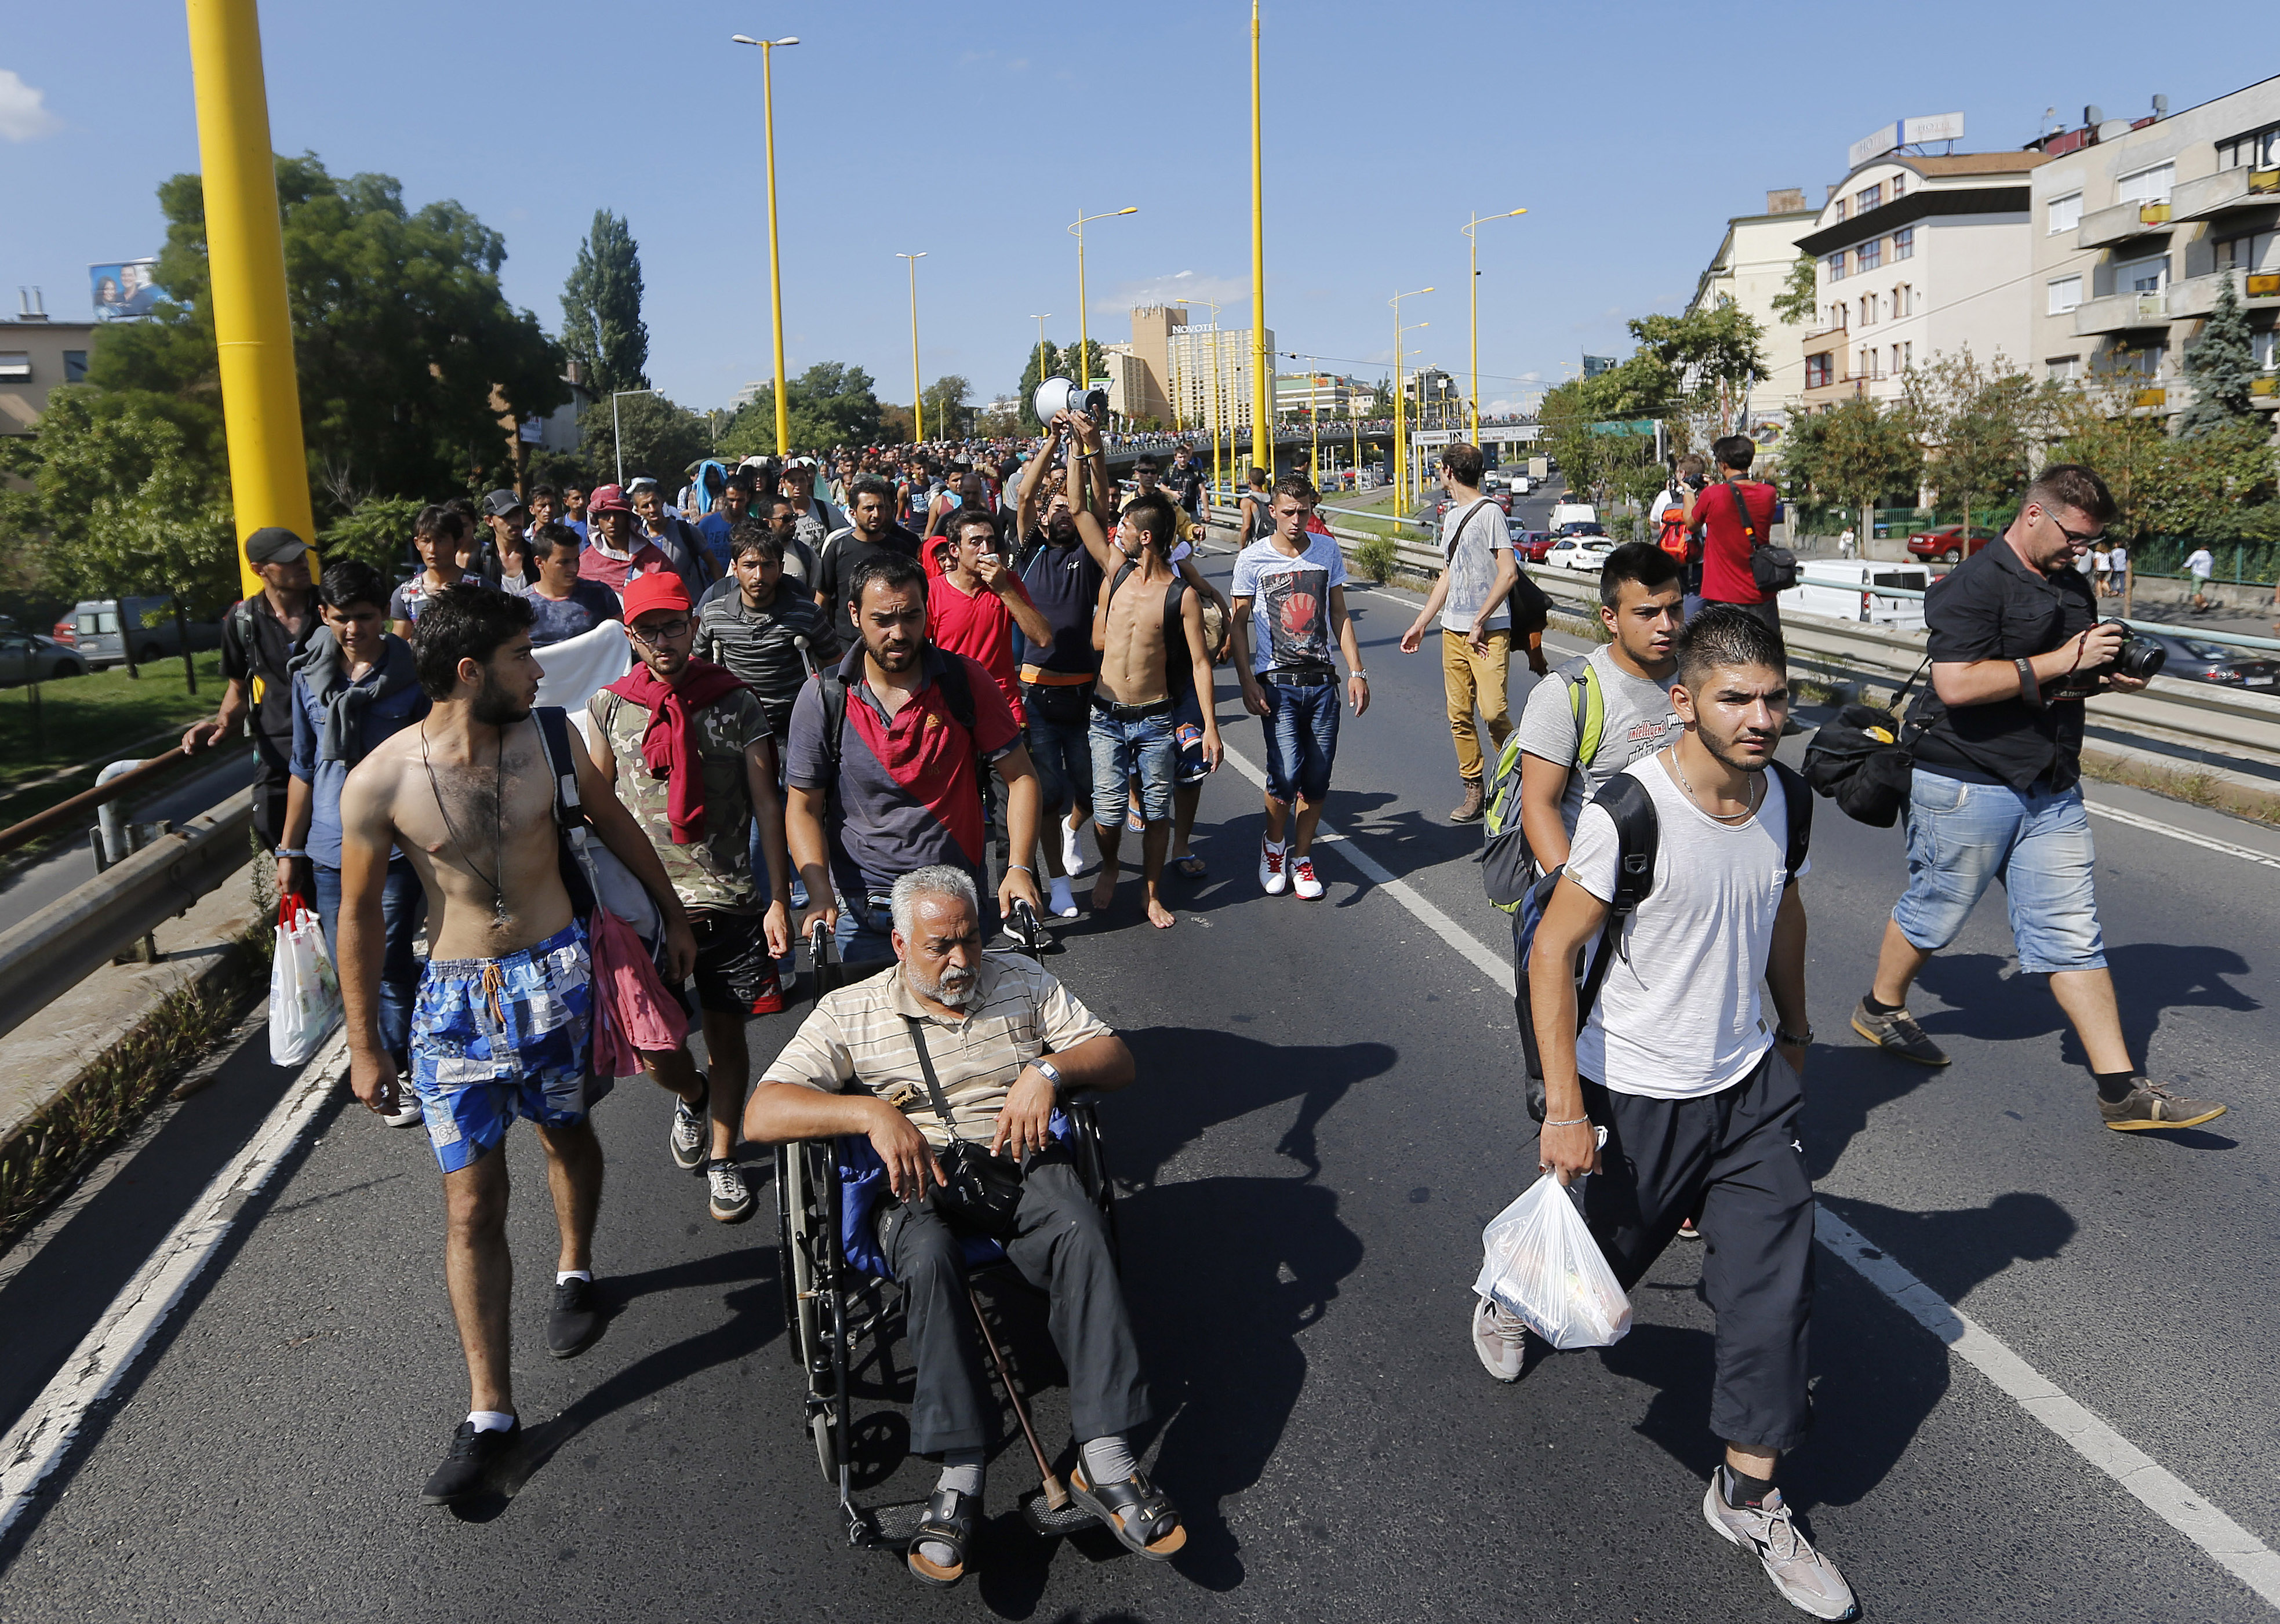 A large group of asylum-seekers walk  out of Budapest, Hungary, Friday, Sept. 4, 2015. Over 150,000 people seeking to enter Europe have reached Hungary this year, most coming through the southern border with Serbia, and many apply for asylum but quickly try to leave for richer EU countries.  Photo: AP